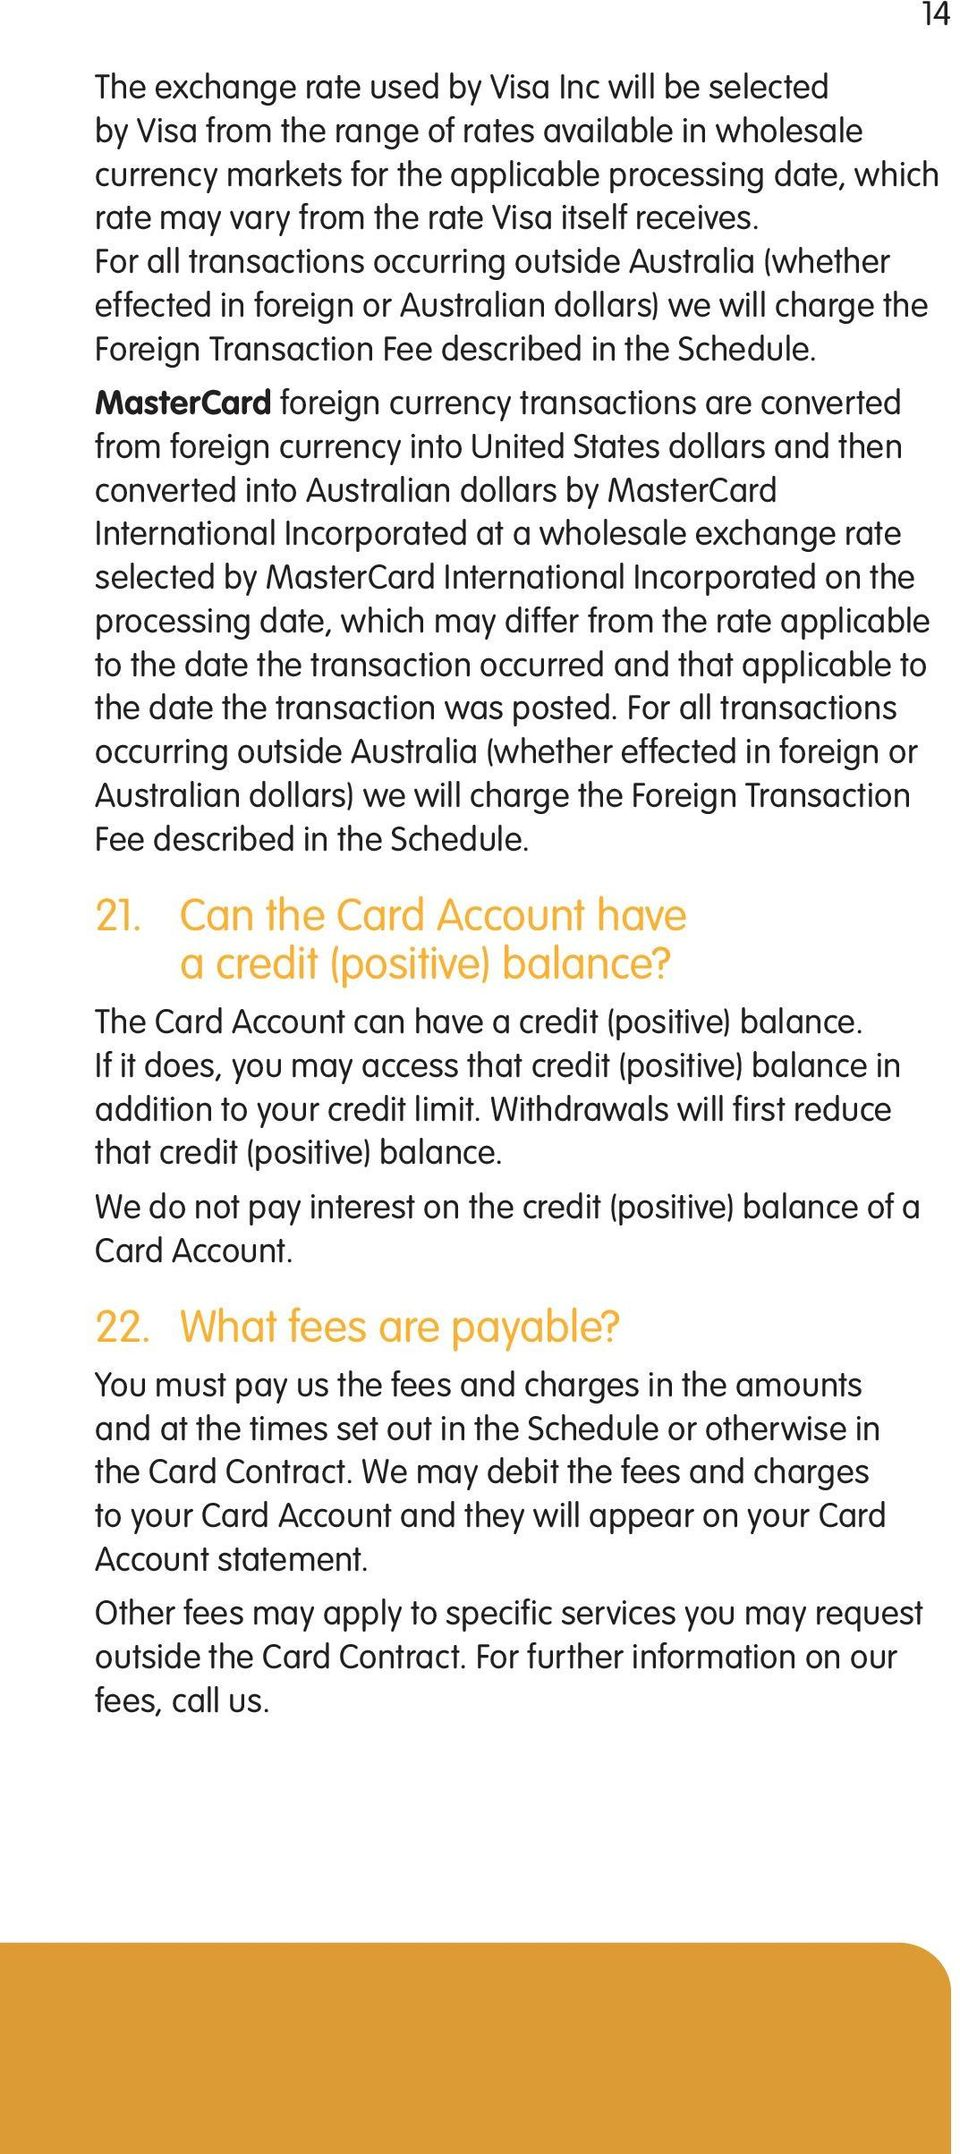 MasterCard foreign currency transactions are converted from foreign currency into United States dollars and then converted into Australian dollars by MasterCard International Incorporated at a